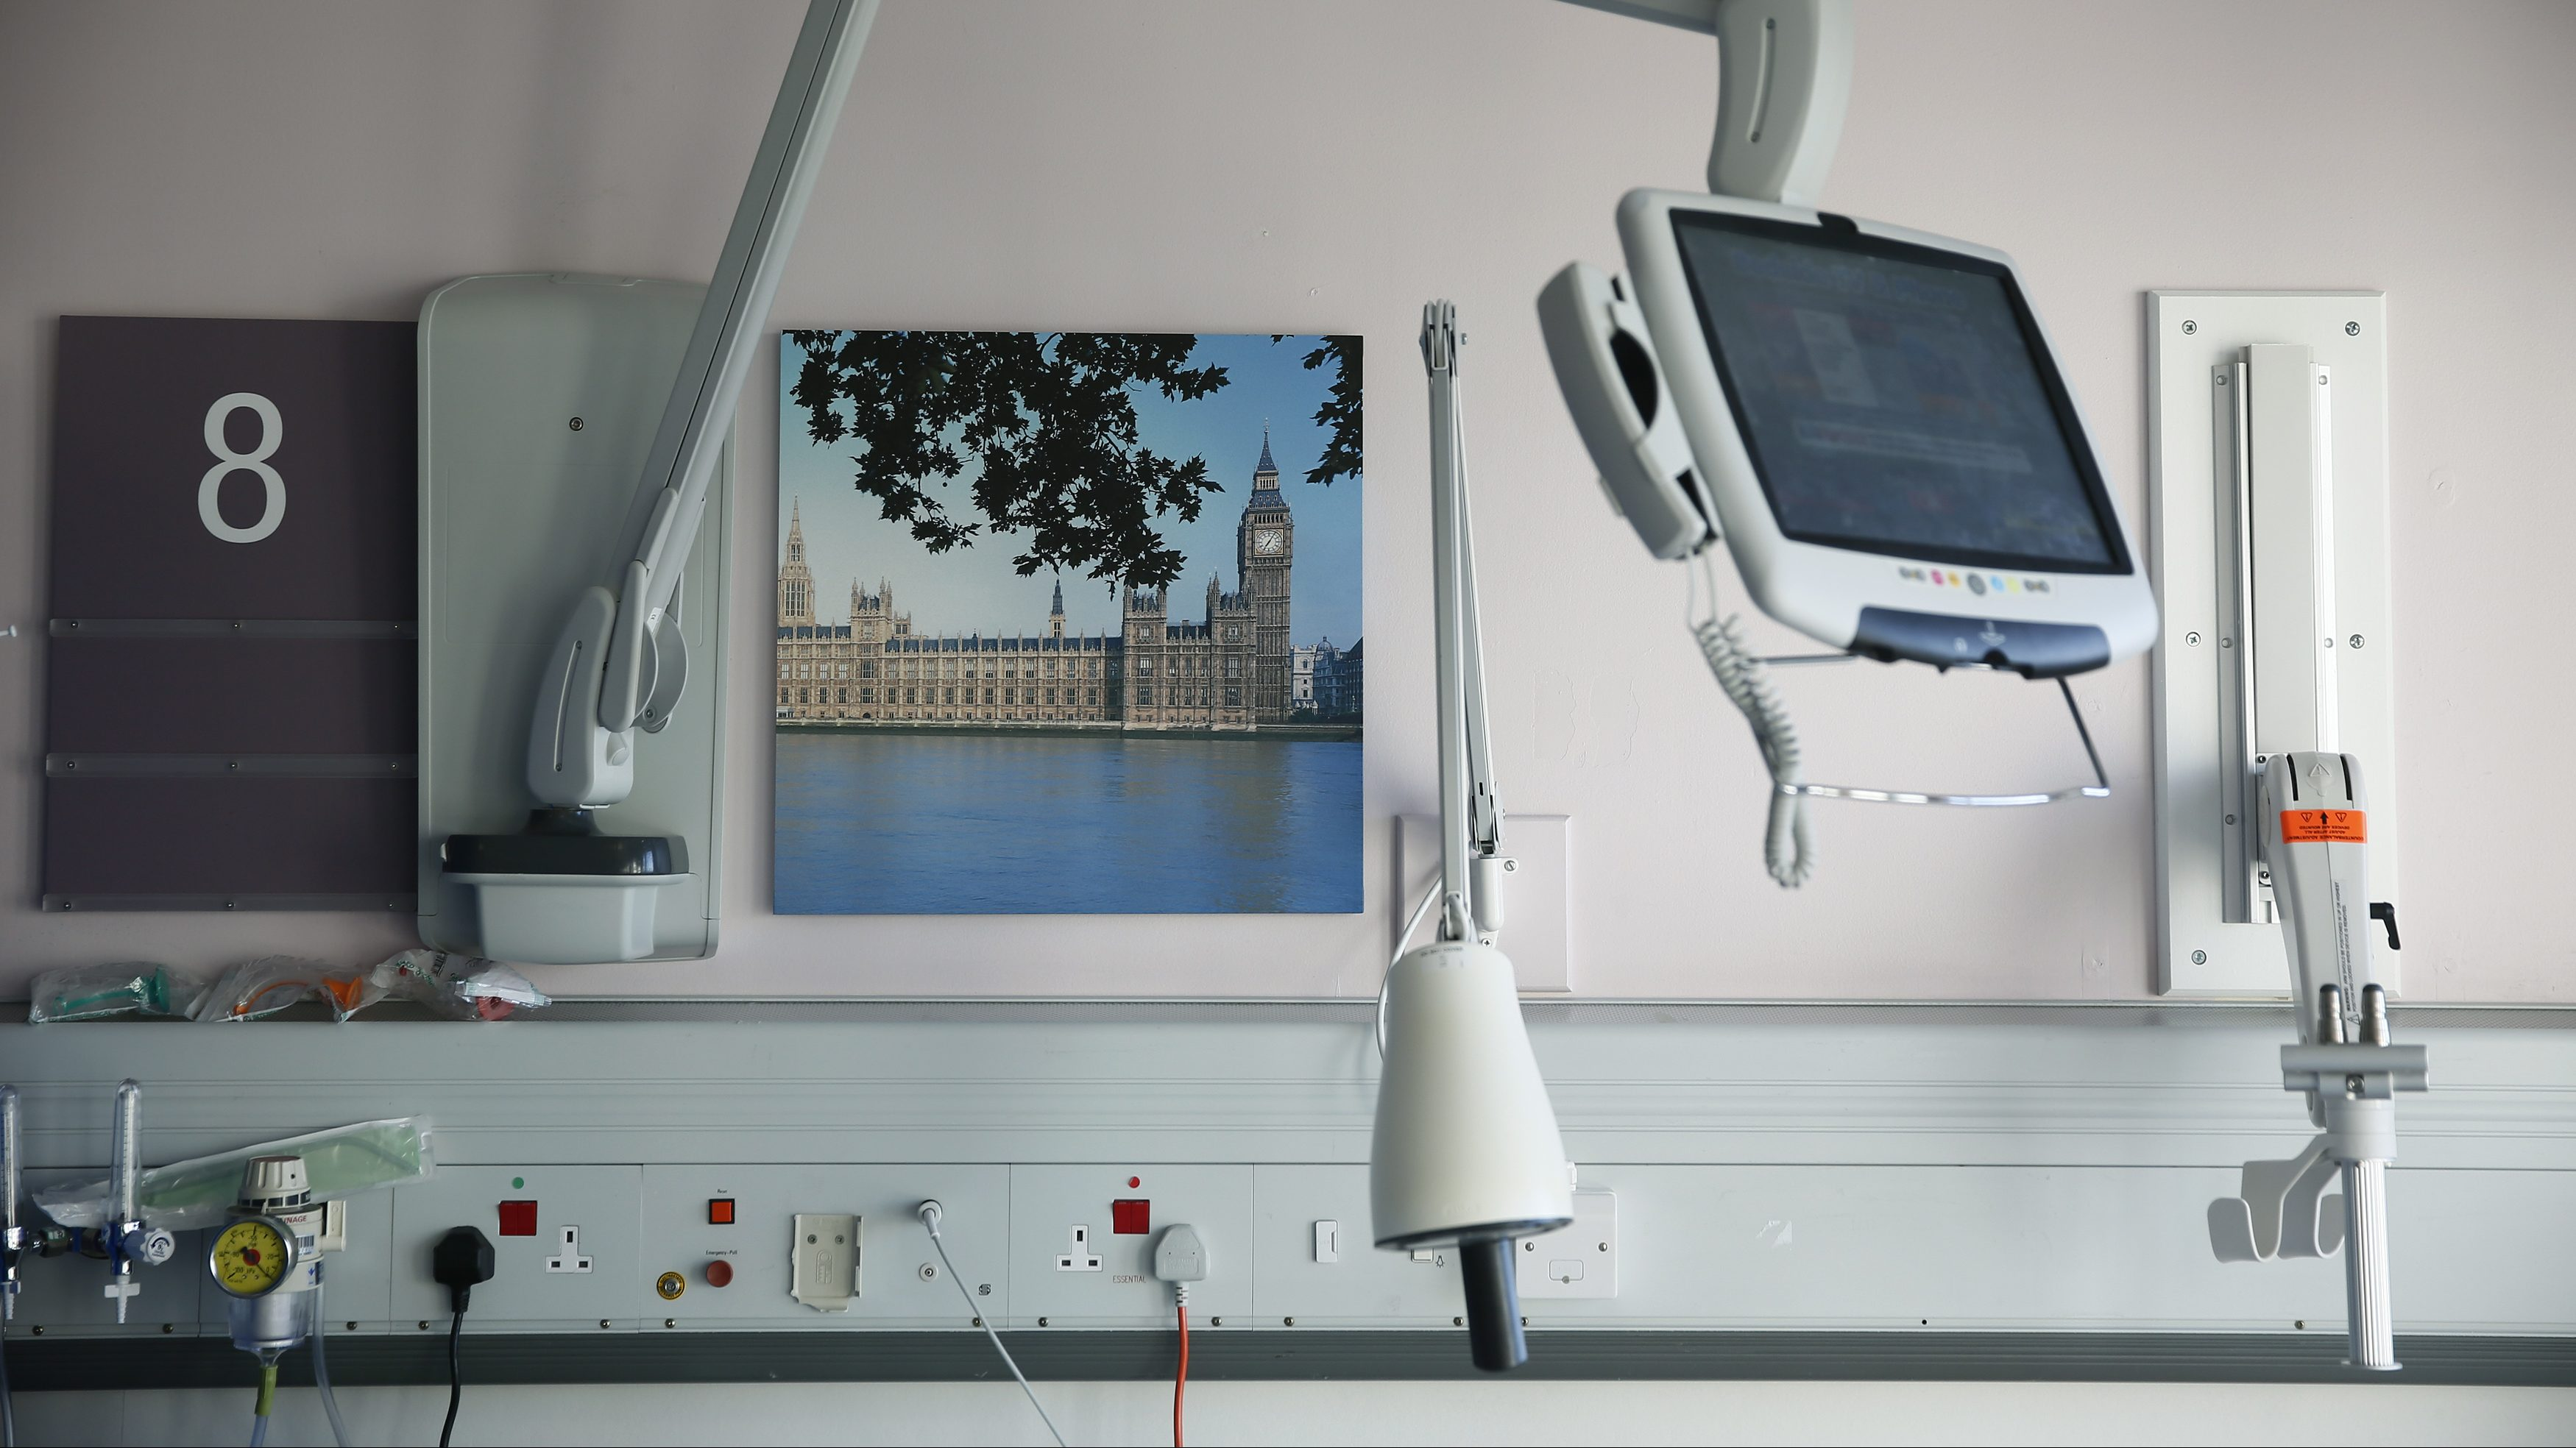 A picture of the Houses of Parliament and Big Ben is seen on a ward at St Thomas' Hospital in central London January 28, 2015. Dearly-loved and overburdened, Britain's national health system has become the top issue for voters ahead of May's election, after winter brought headlines of ambulances queueing outside hospitals and patients languishing on trolleys for hours.The National Health Service (NHS) delivers care for free to the whole population from cradle to grave and accounts for a third of government spending on public services. Photograph taken January 28, 2015.